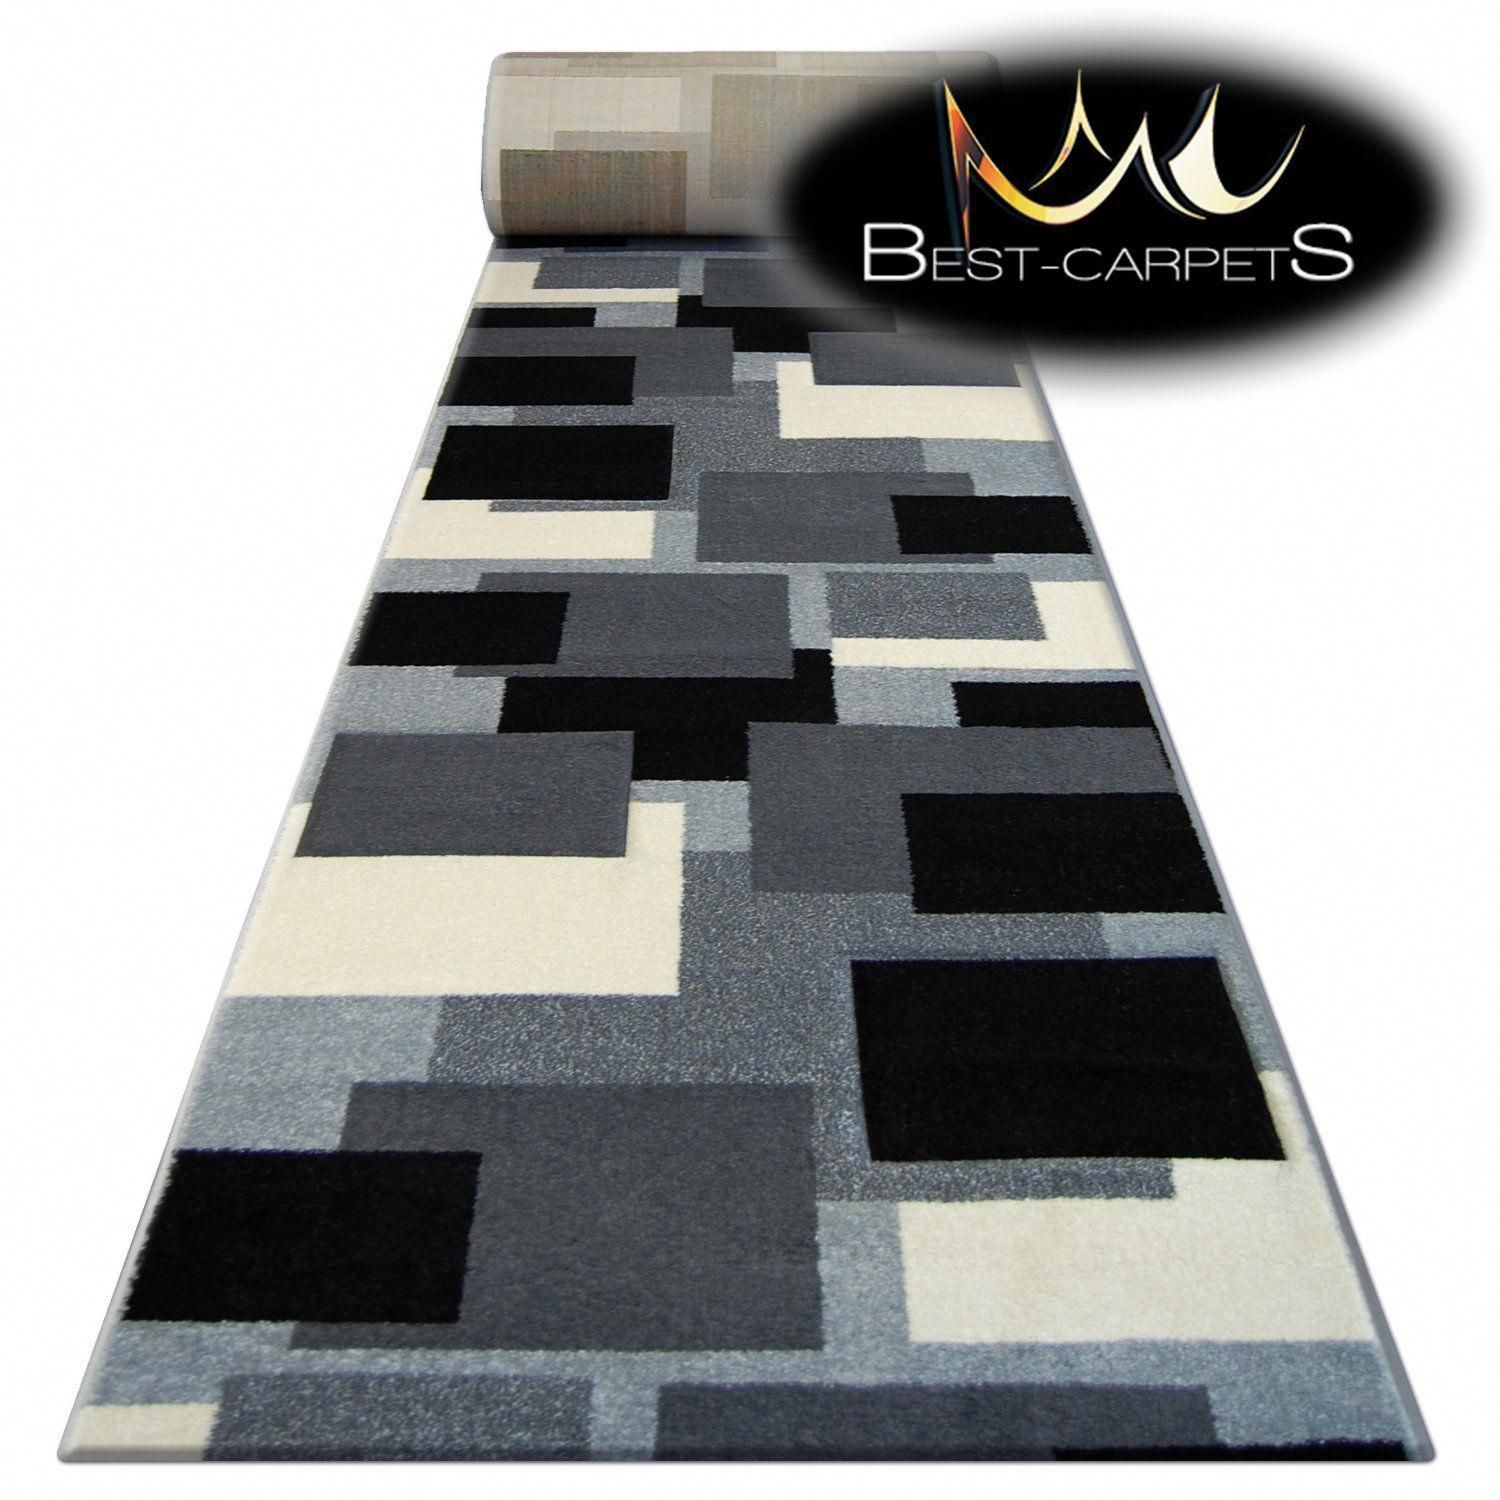 Hall Carpet Runners Extra Long Carpetrunnersforhallways